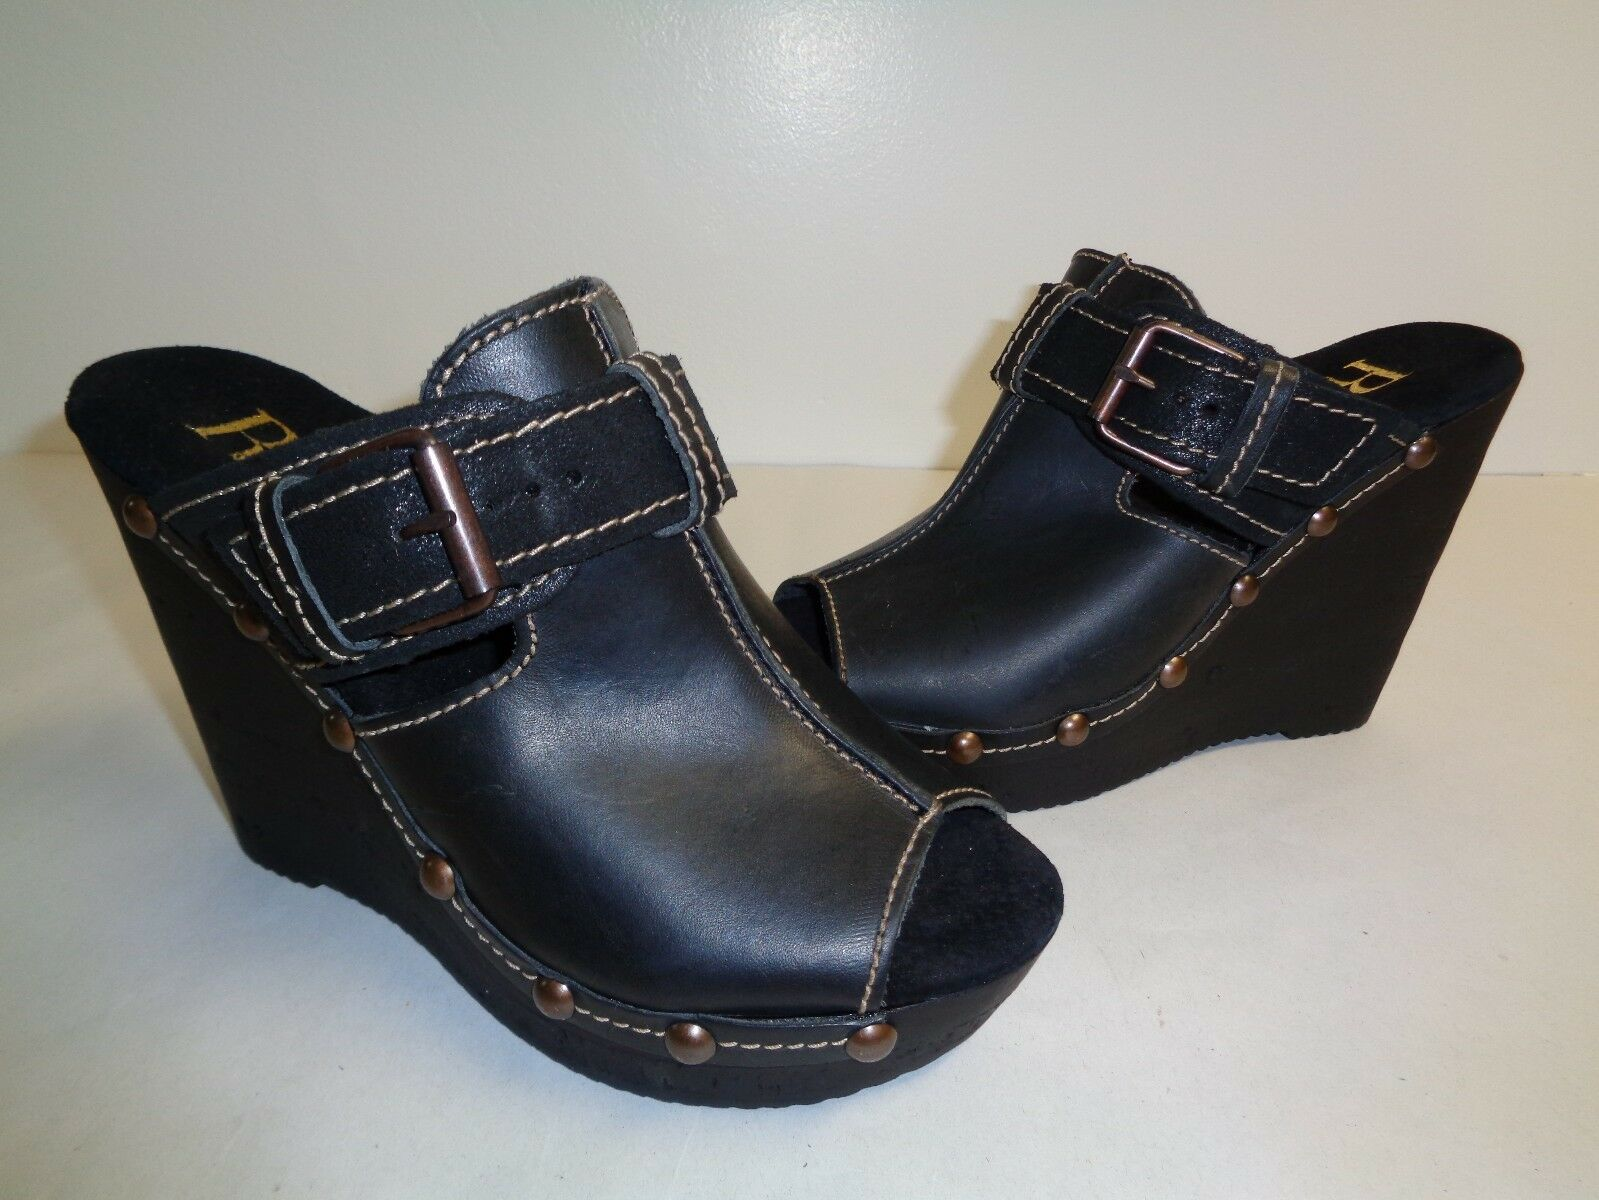 Reba Size 7 UNLIMITED Black Leather Wedge Sandals New Womens shoes